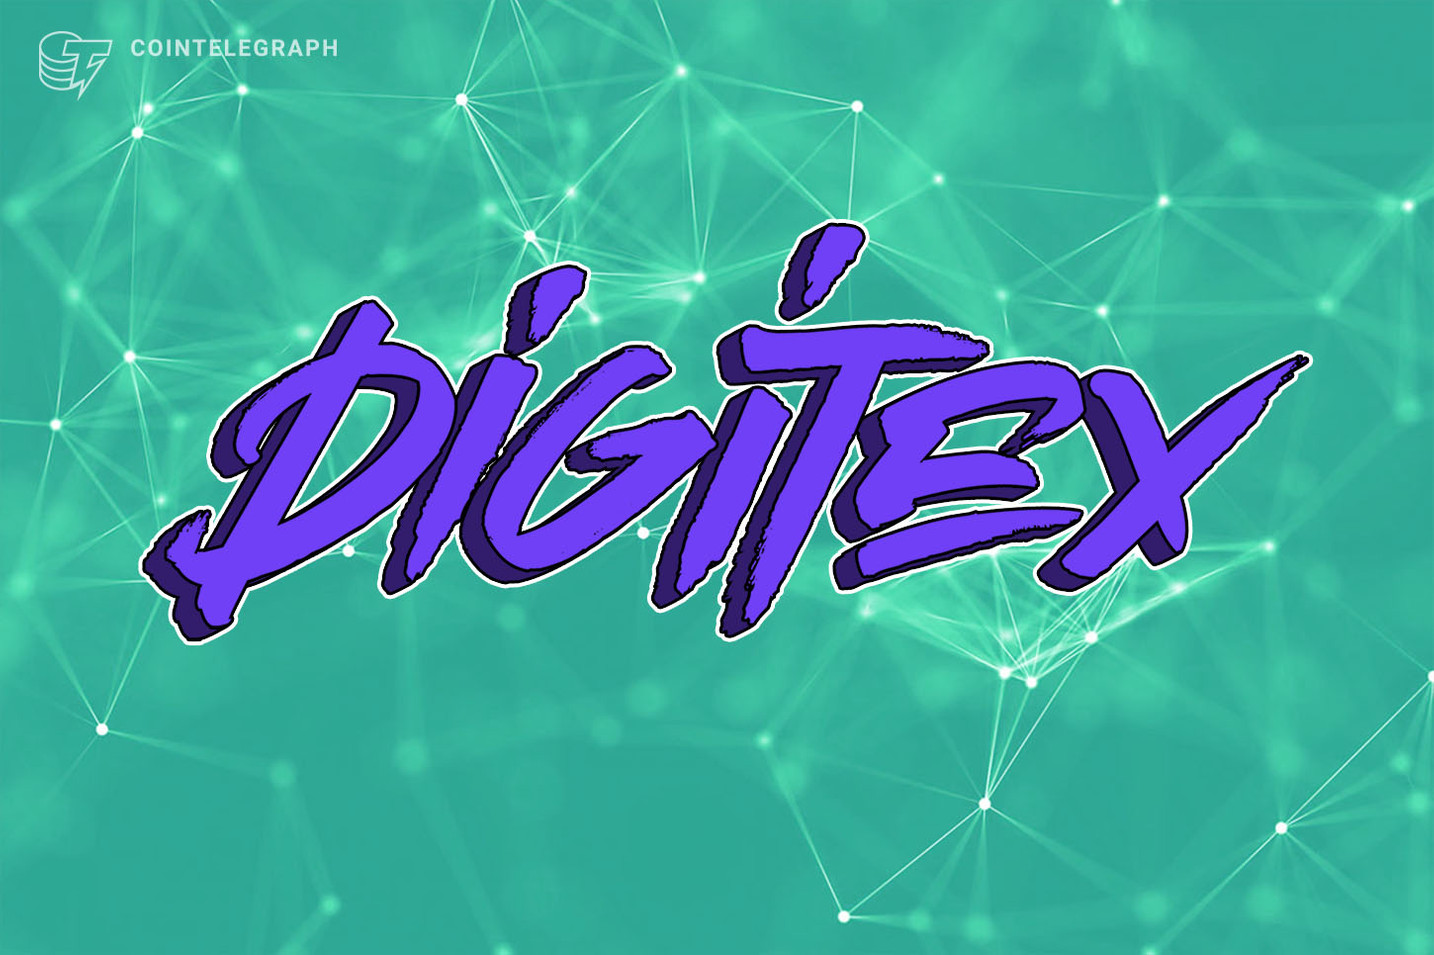 Digitex announces launch of new stablecoin, DUSD